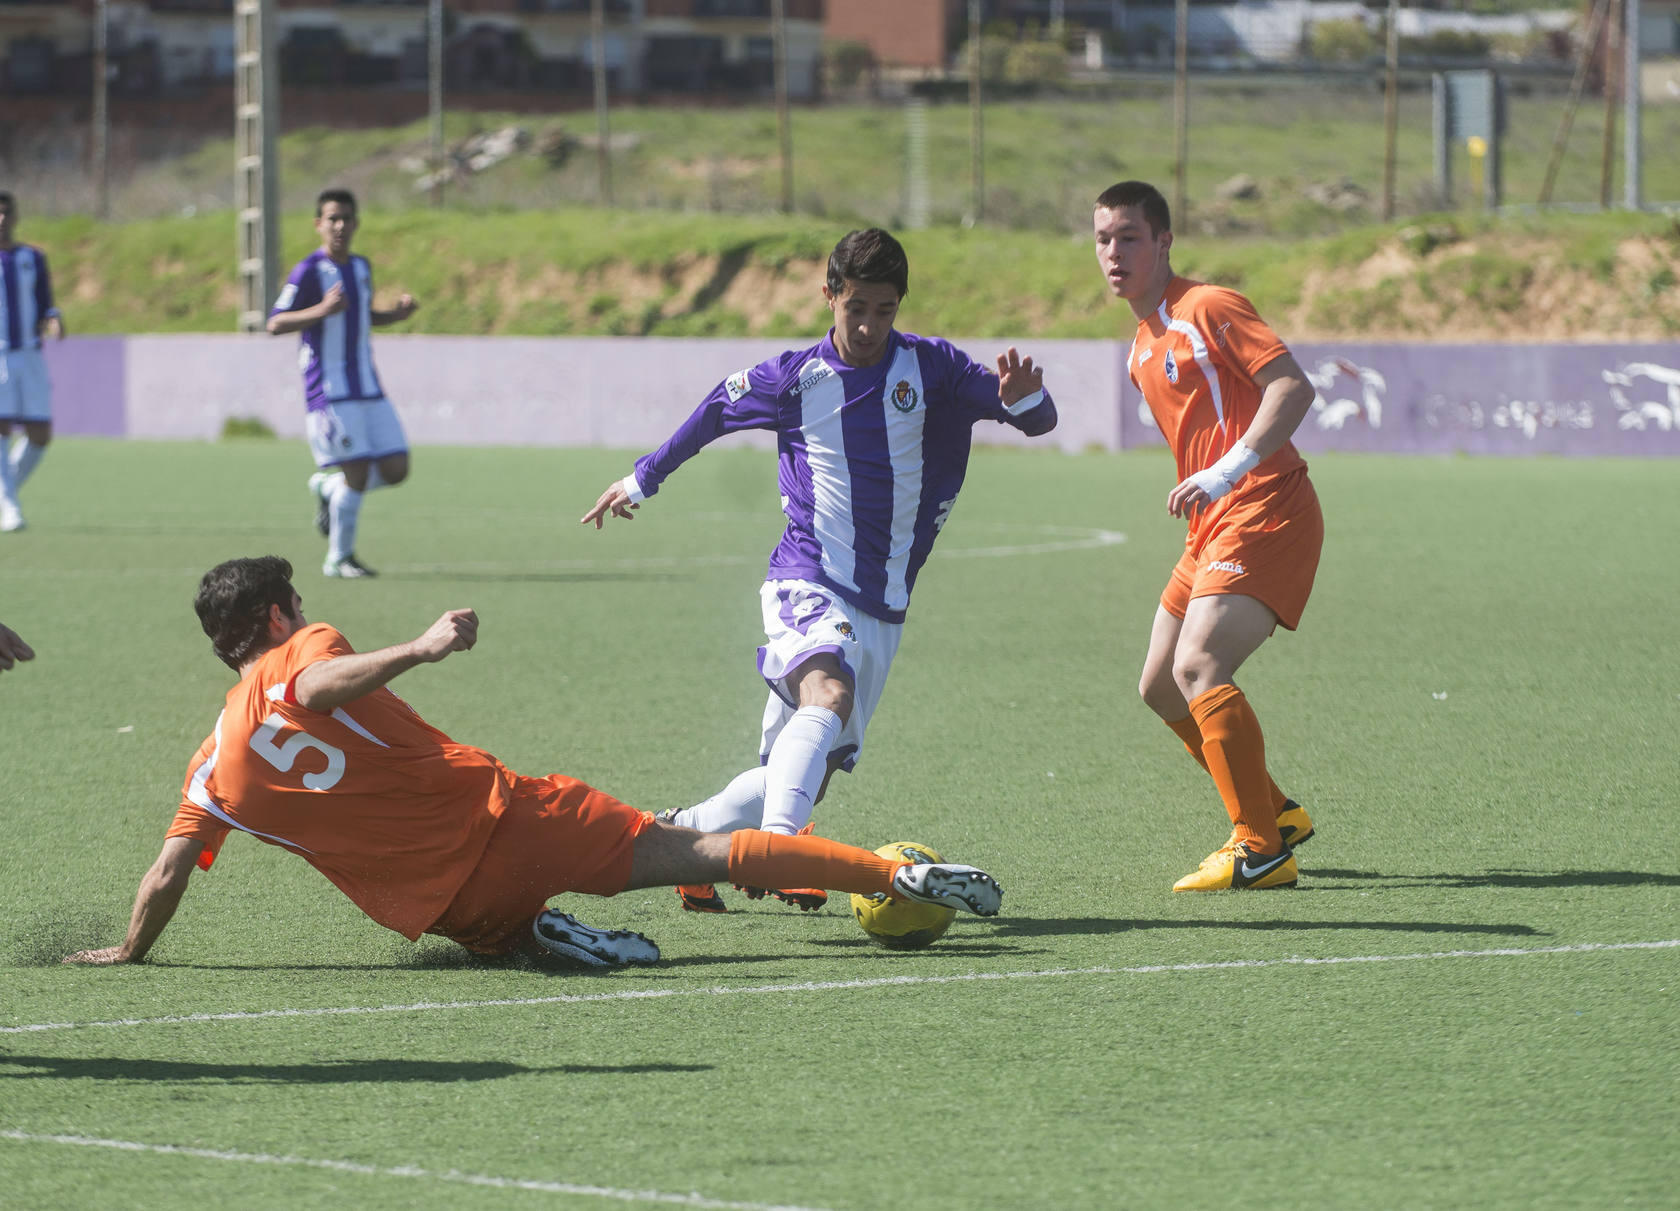 Real Valladolid juvenil 1-1 Las Rozas